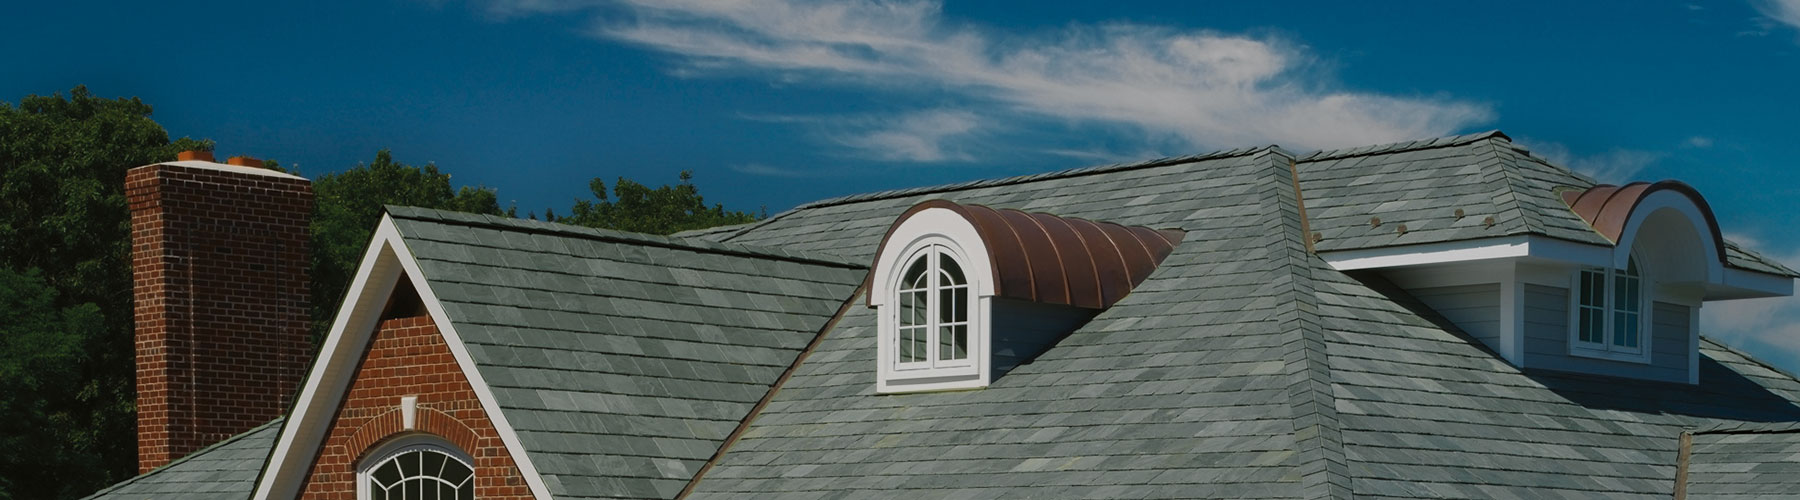 roofing-helpful-resources